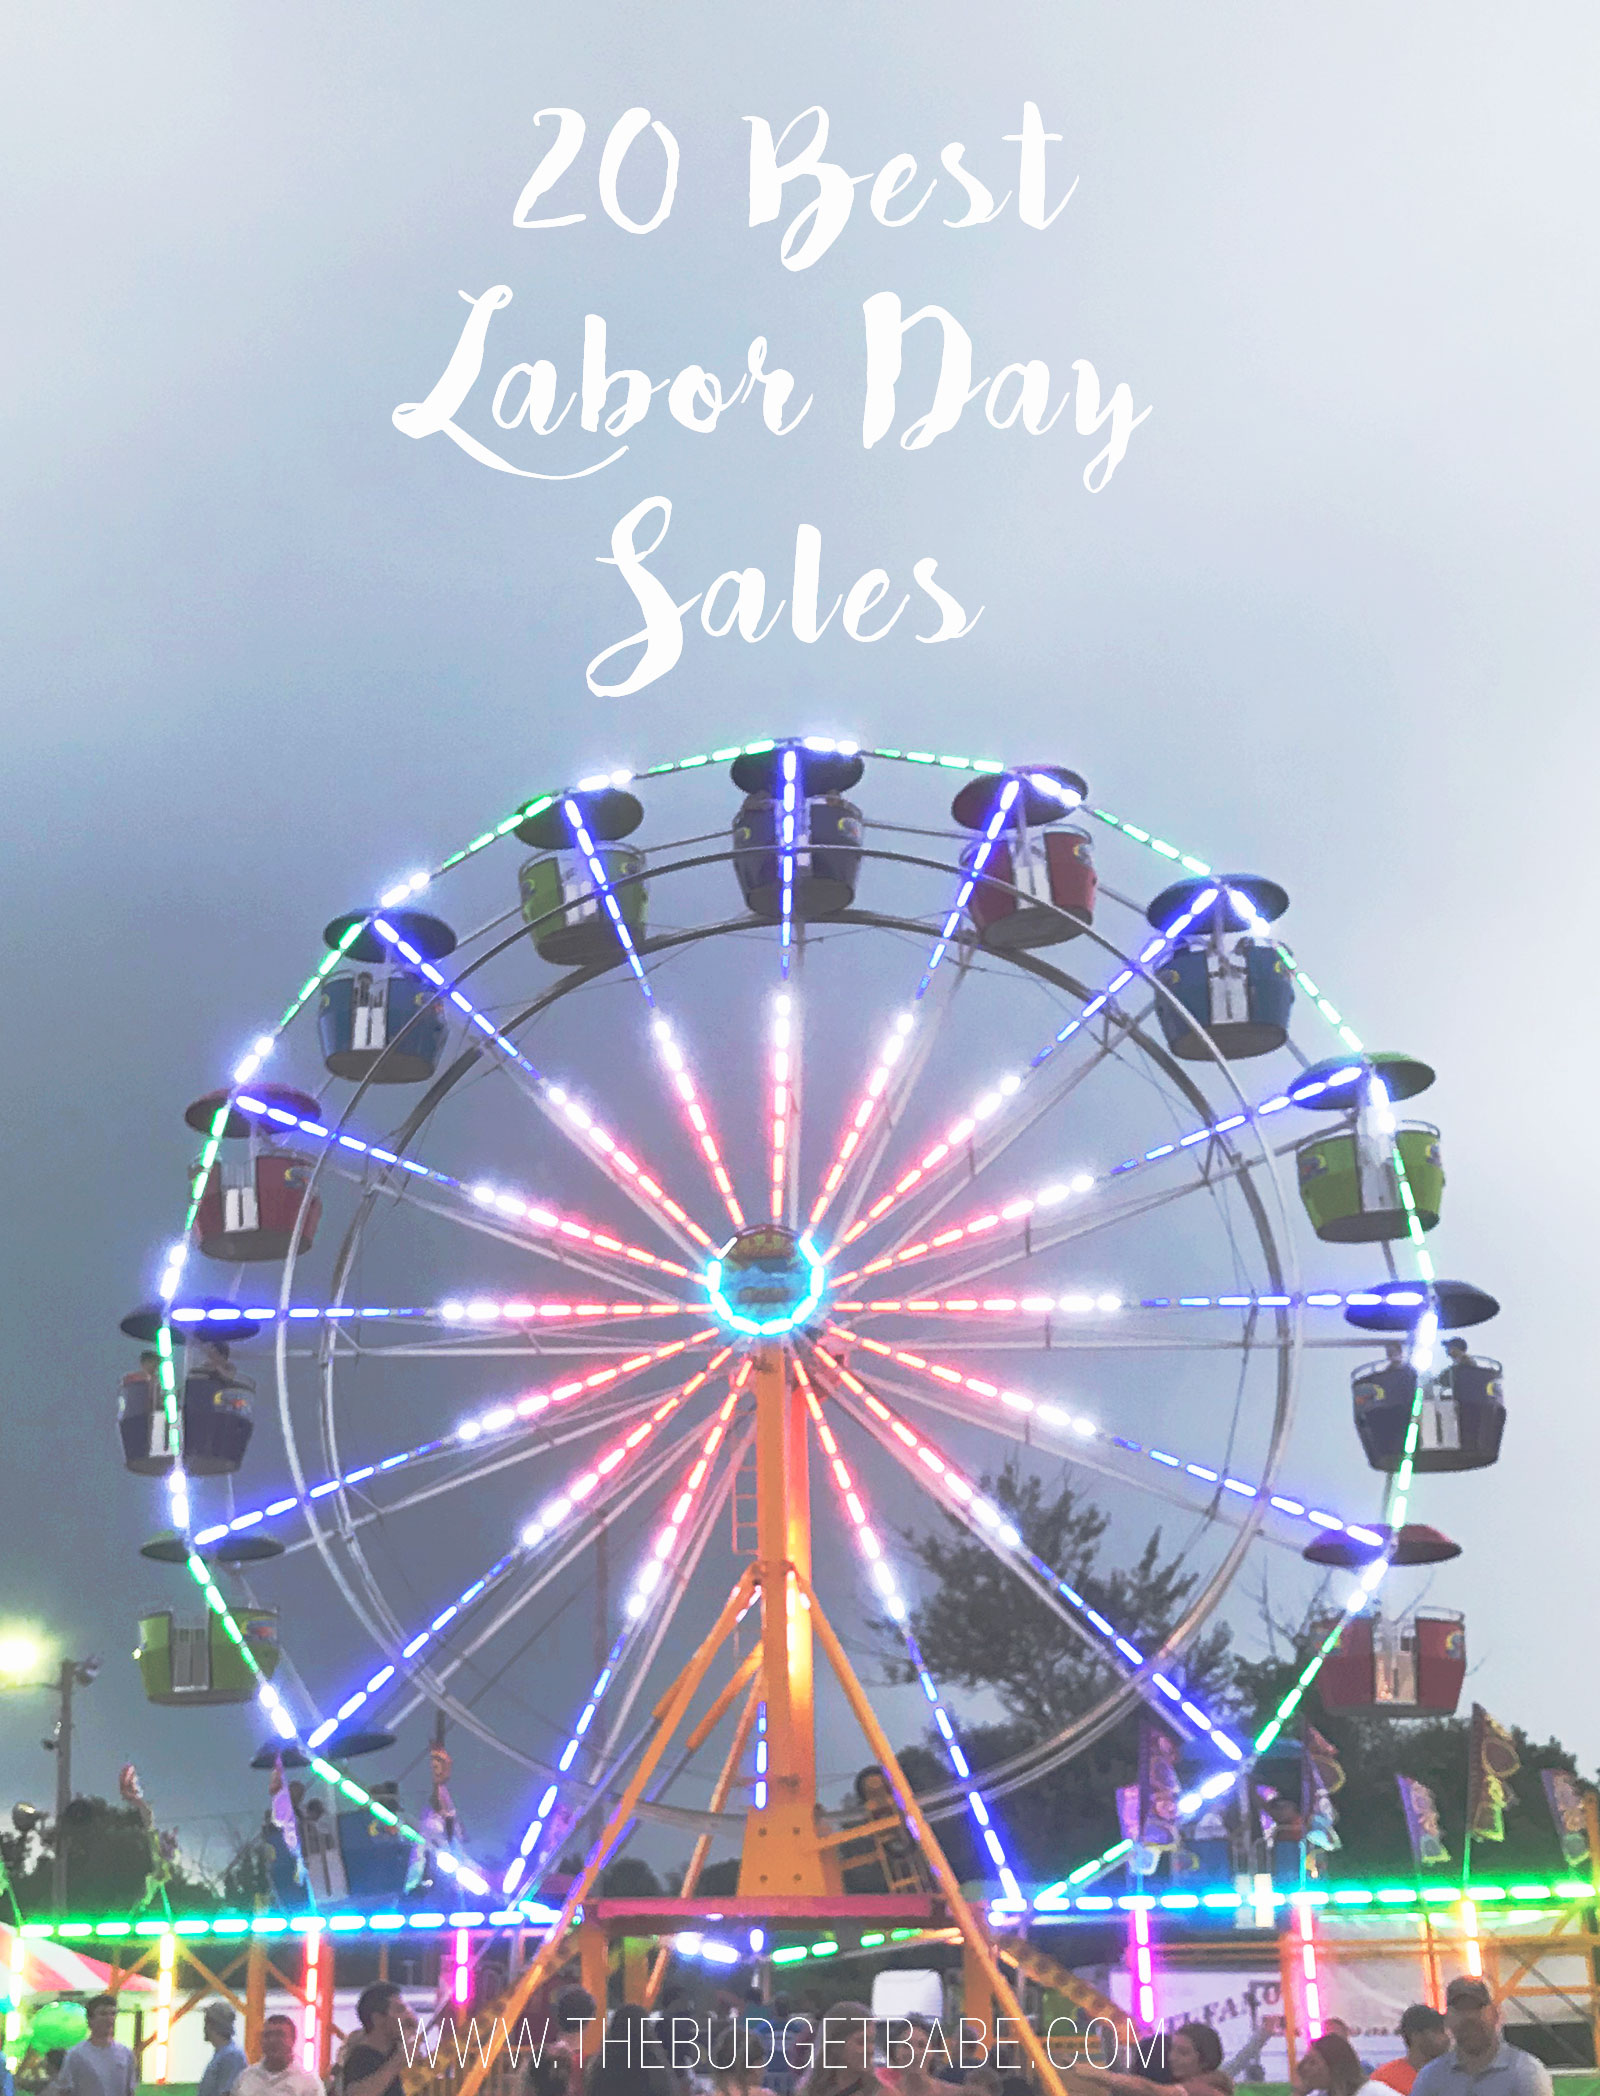 Labor Day Sales Round Up! Lots of stores I didn't think to check